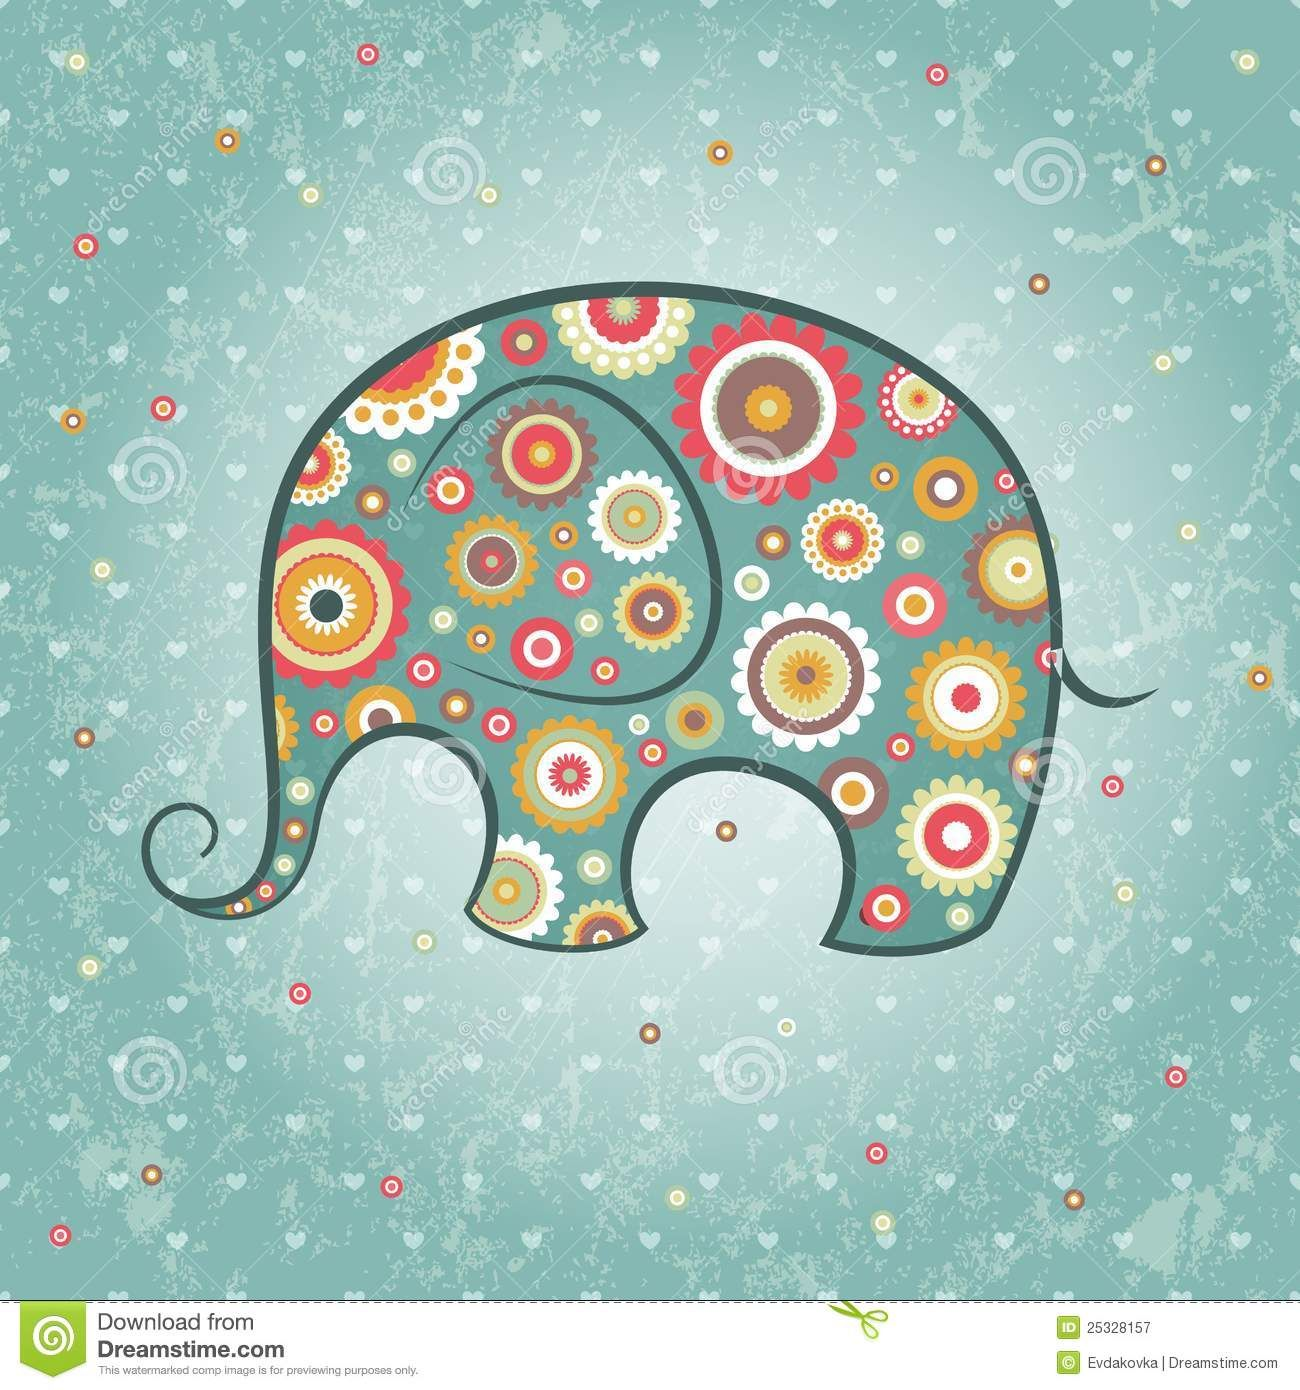 Floral Vector Elephant Royalty Free Stock Photography - Image: 25328157